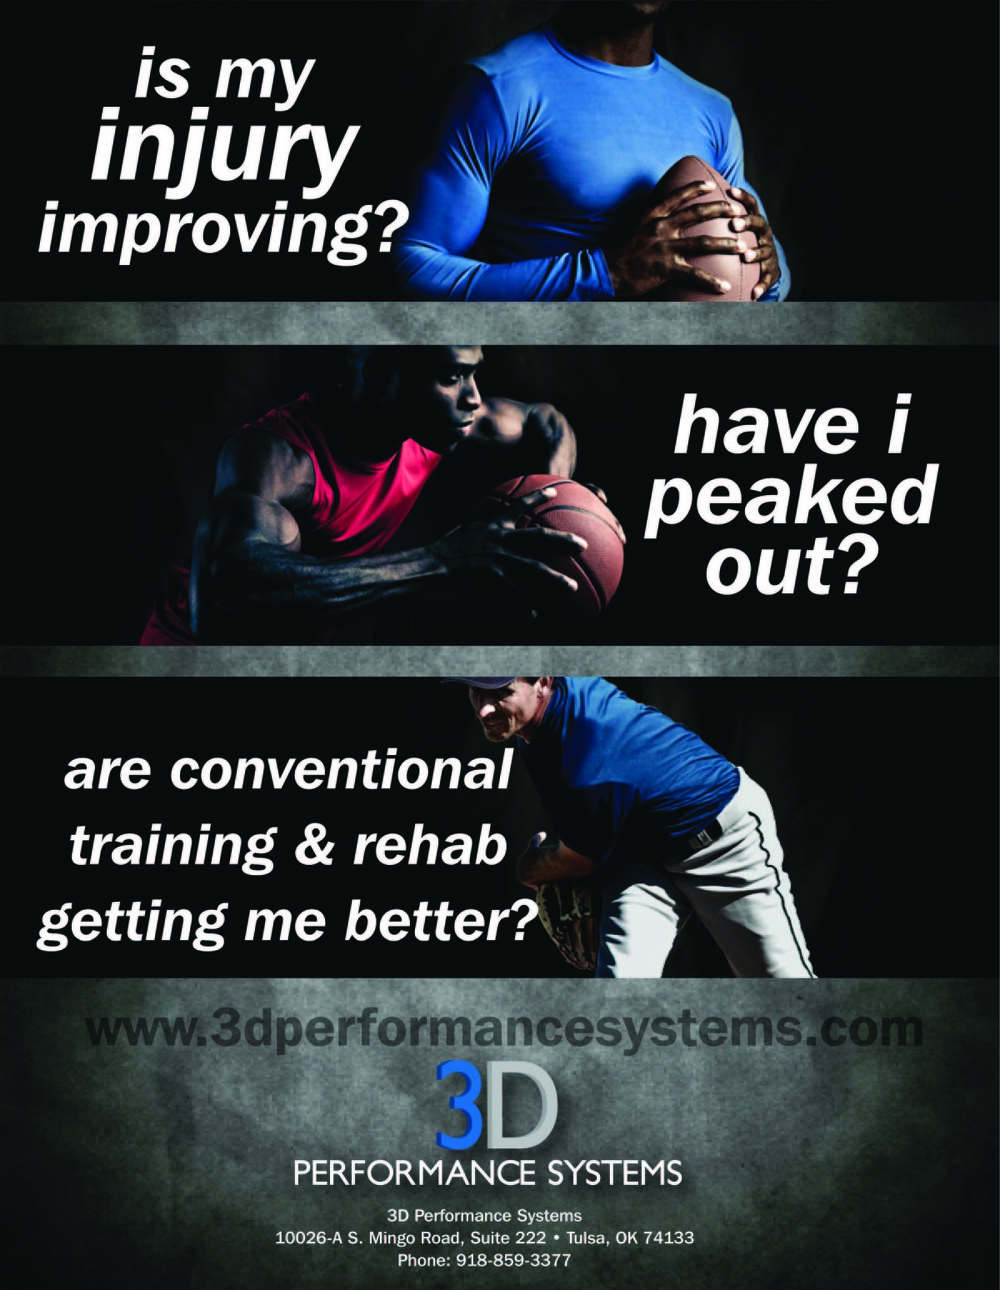 3d performance flyer.jpg